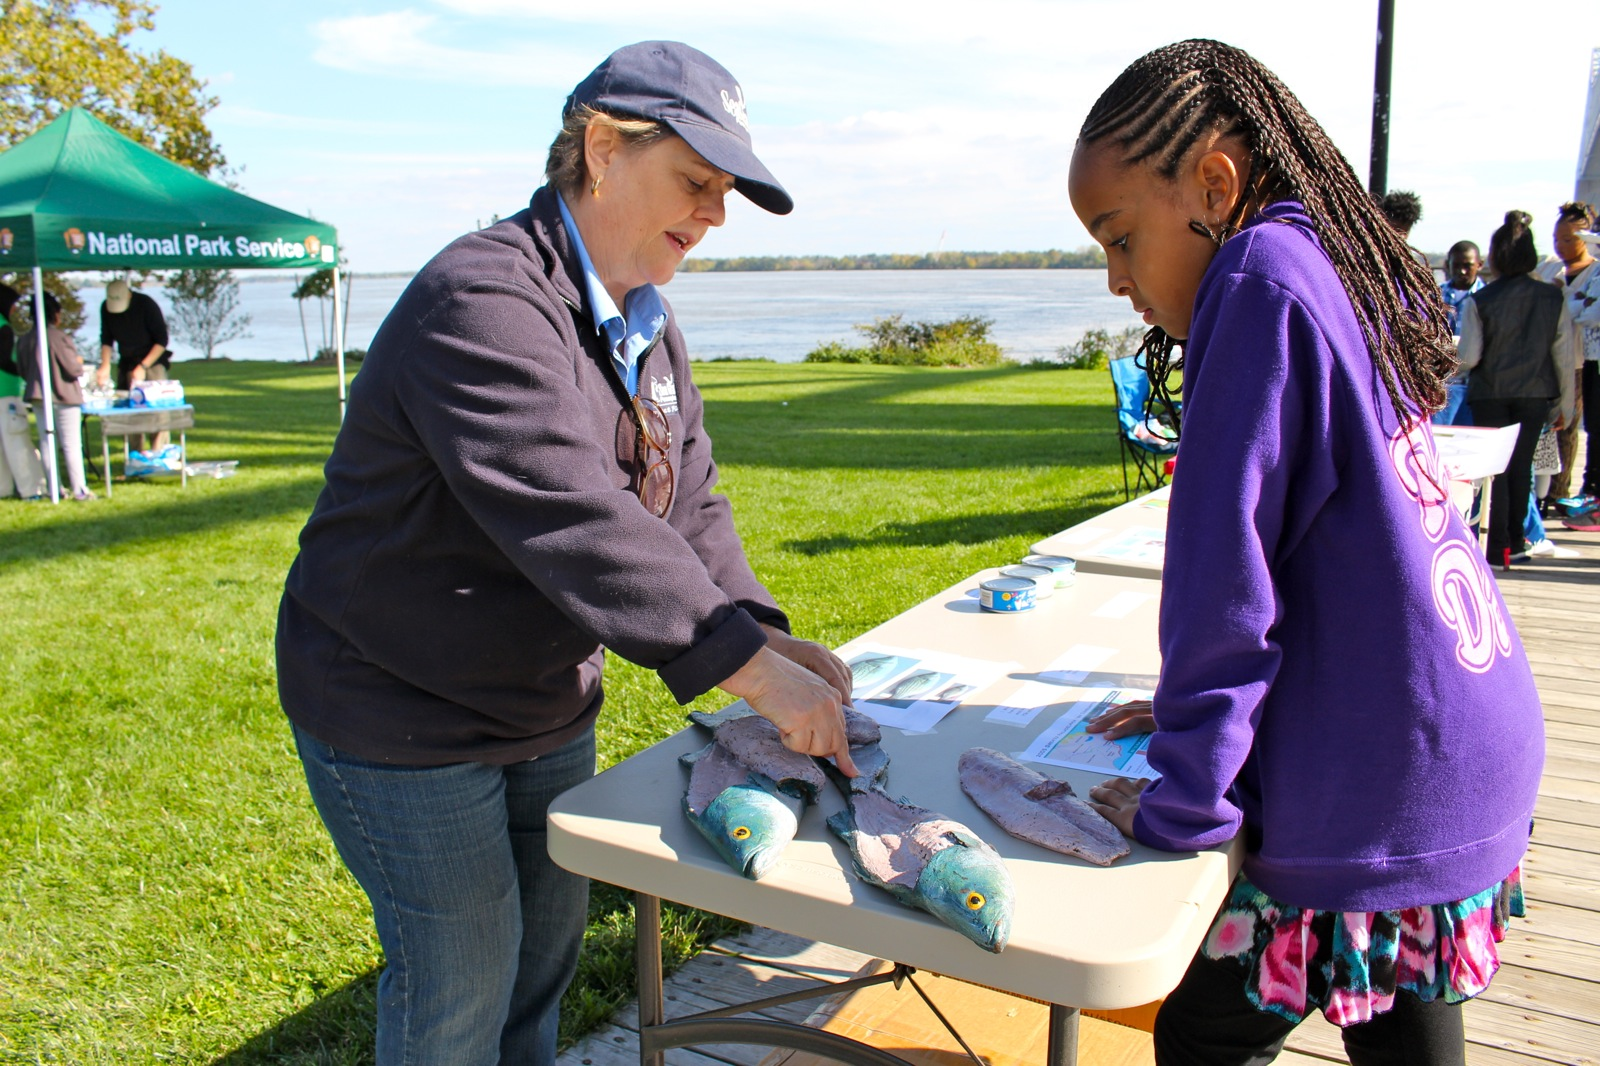 A student learns about fish dissection by the Delaware River